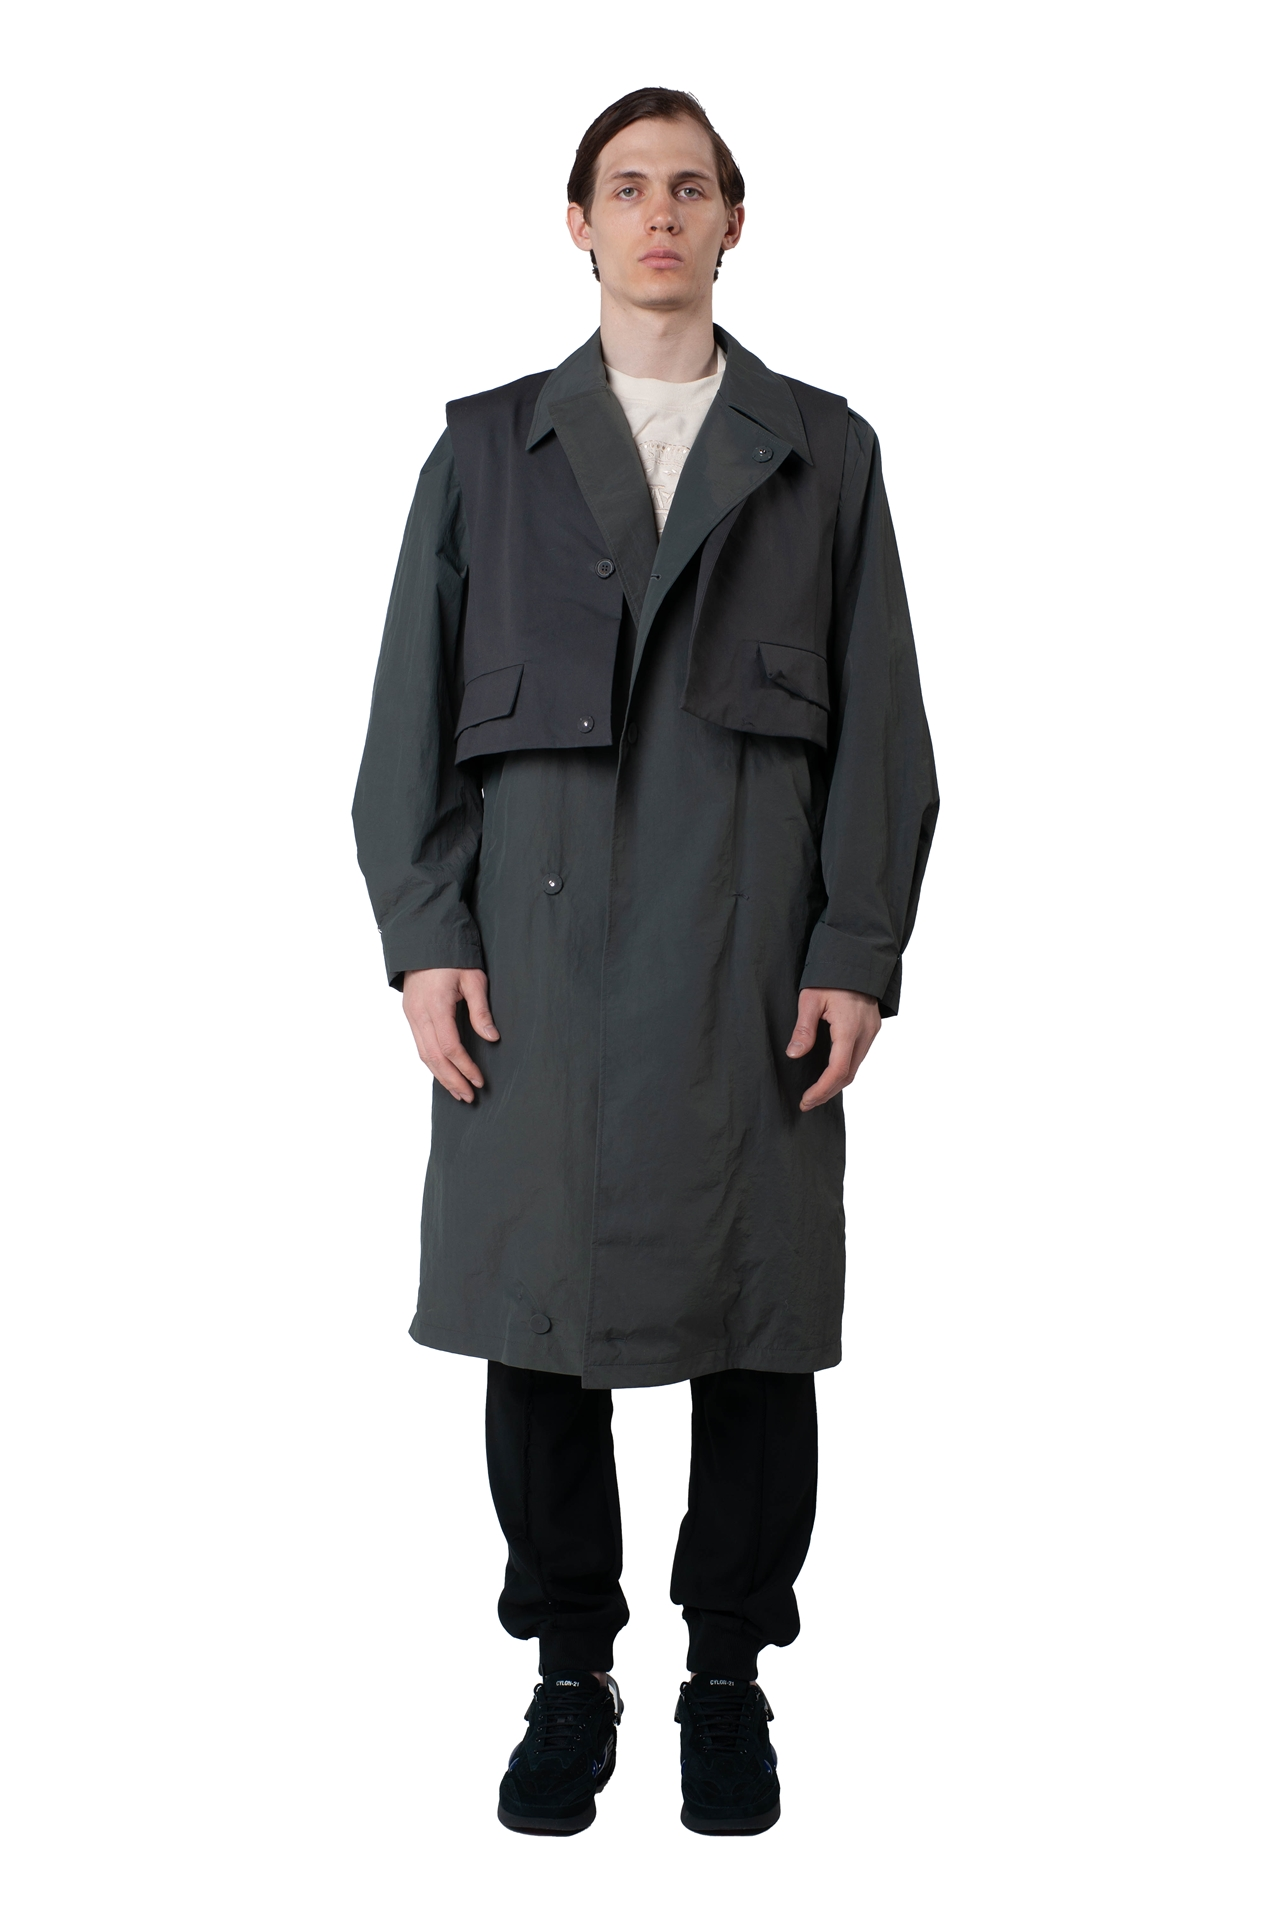 H Trenchcoat BKASSTC02CC Größe: A1 Farbe: charcoal